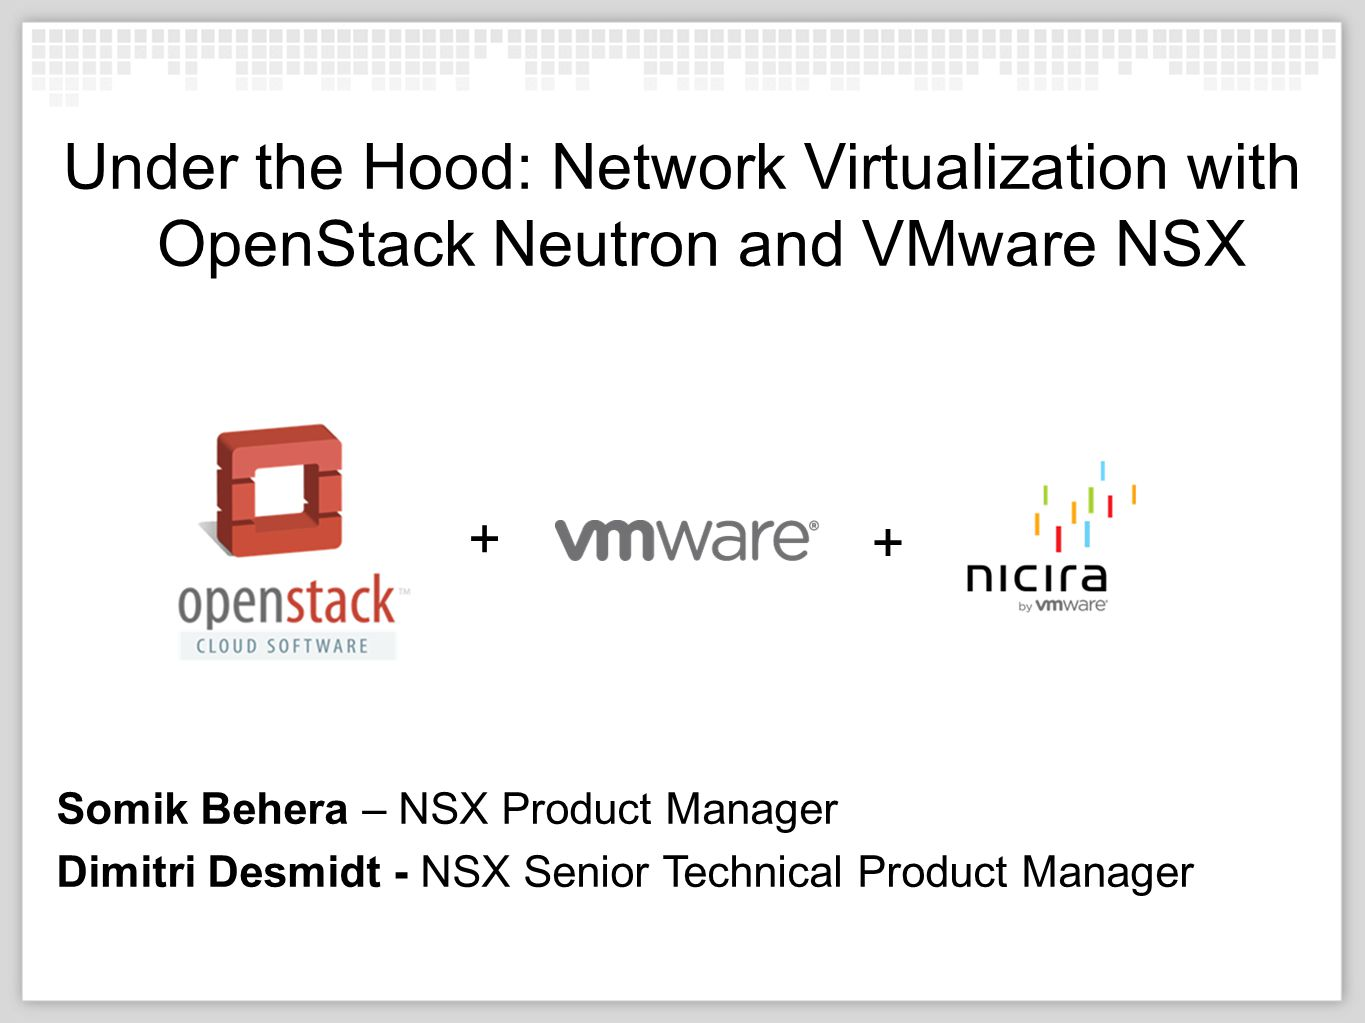 10/04/12 Under the Hood: Network Virtualization with OpenStack Neutron and  VMware NSX Somik Behera – NSX Product Manager Dimitri Desmidt - NSX Senior  Technical